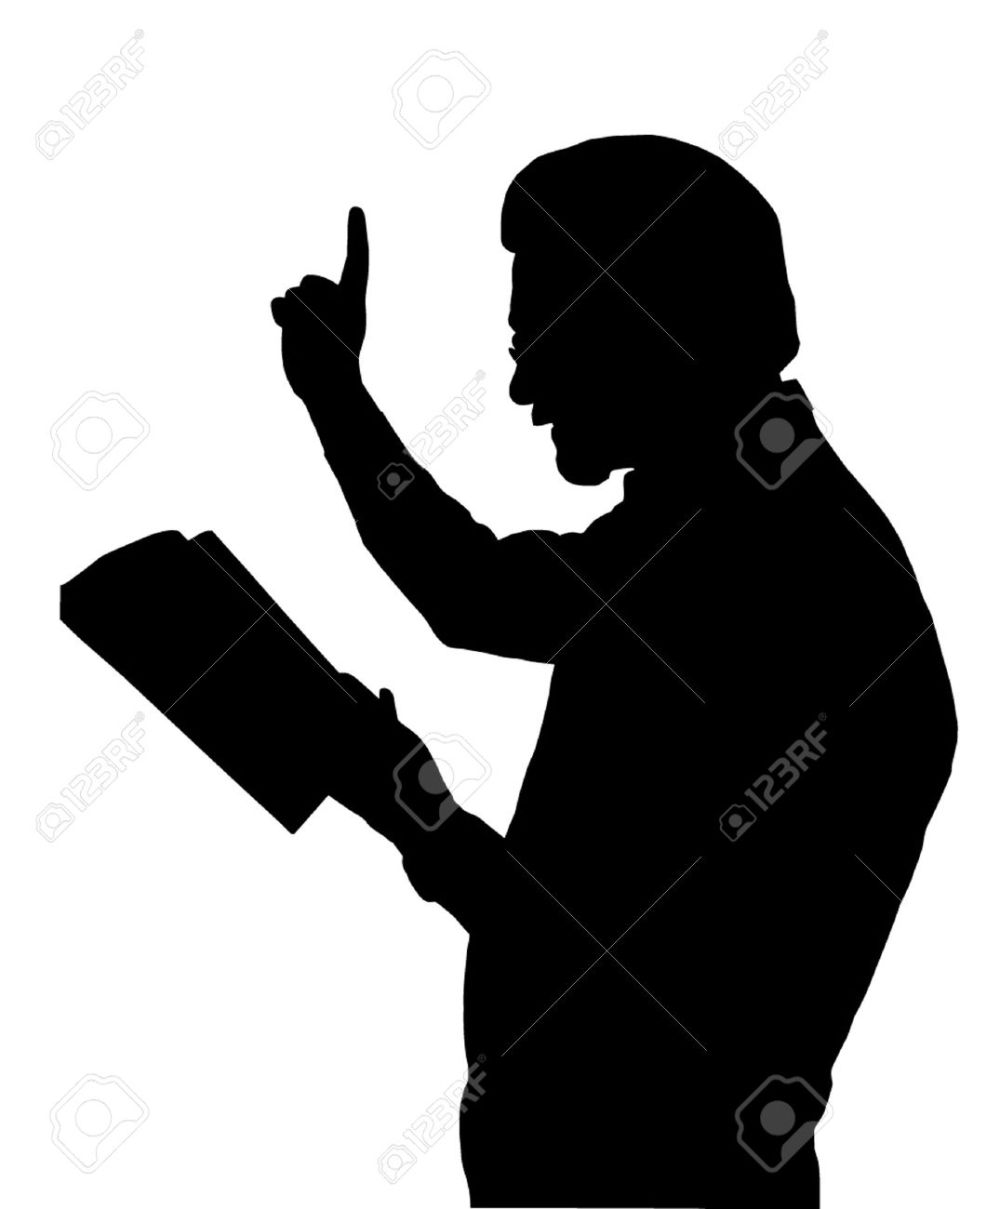 medium resolution of preacher reading from bible with raised finger stock vector 12480096